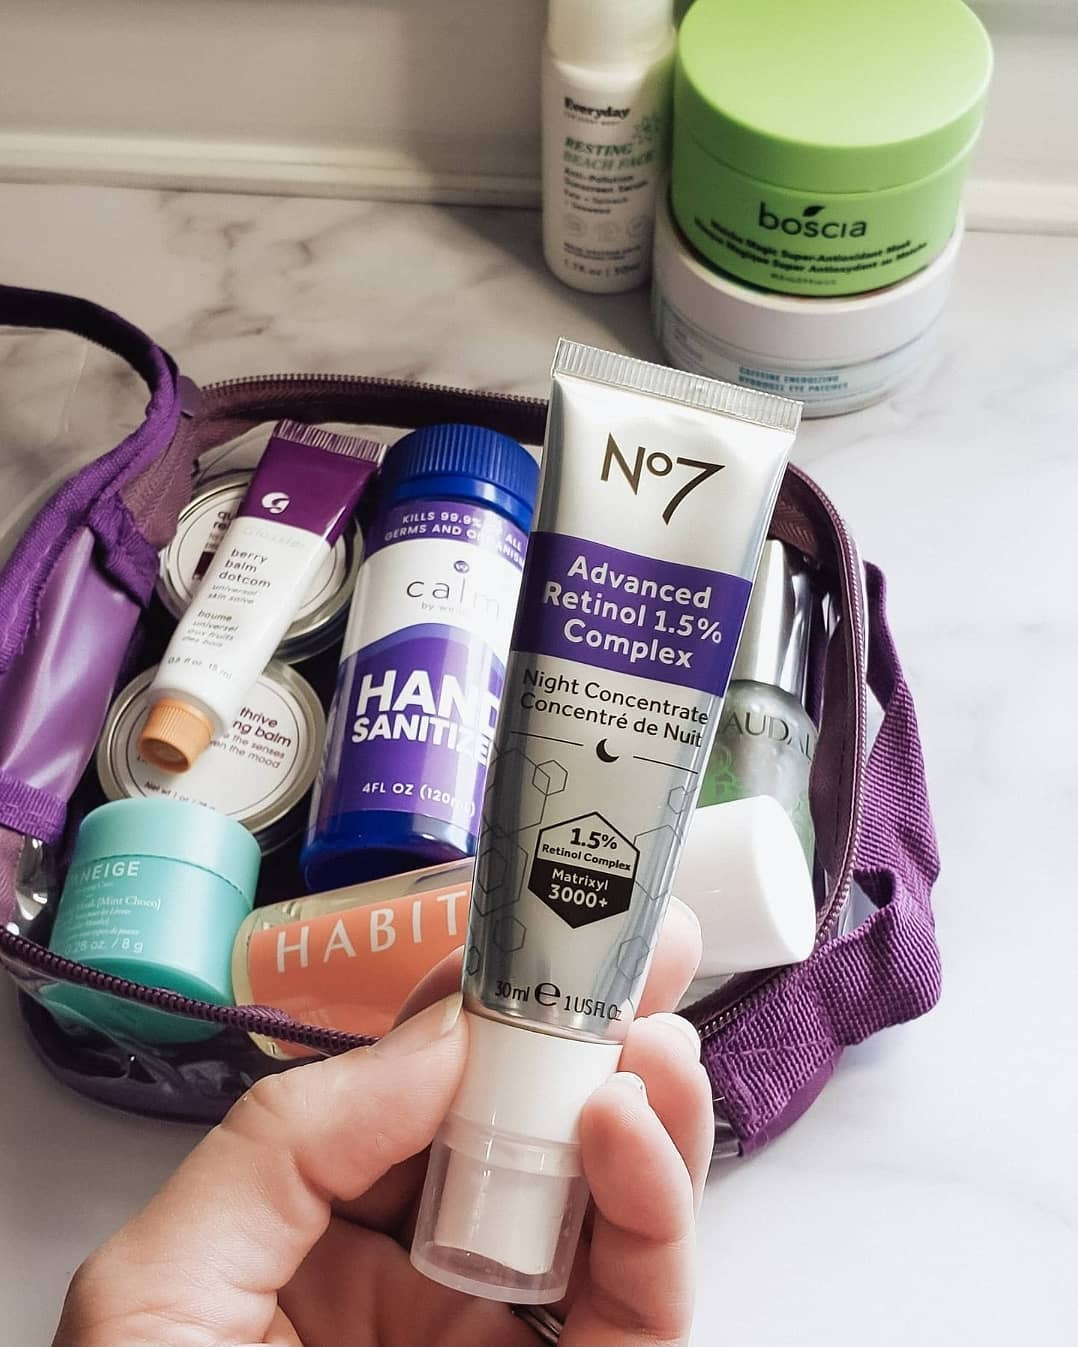 Makeup essentials packed in a quart size bag